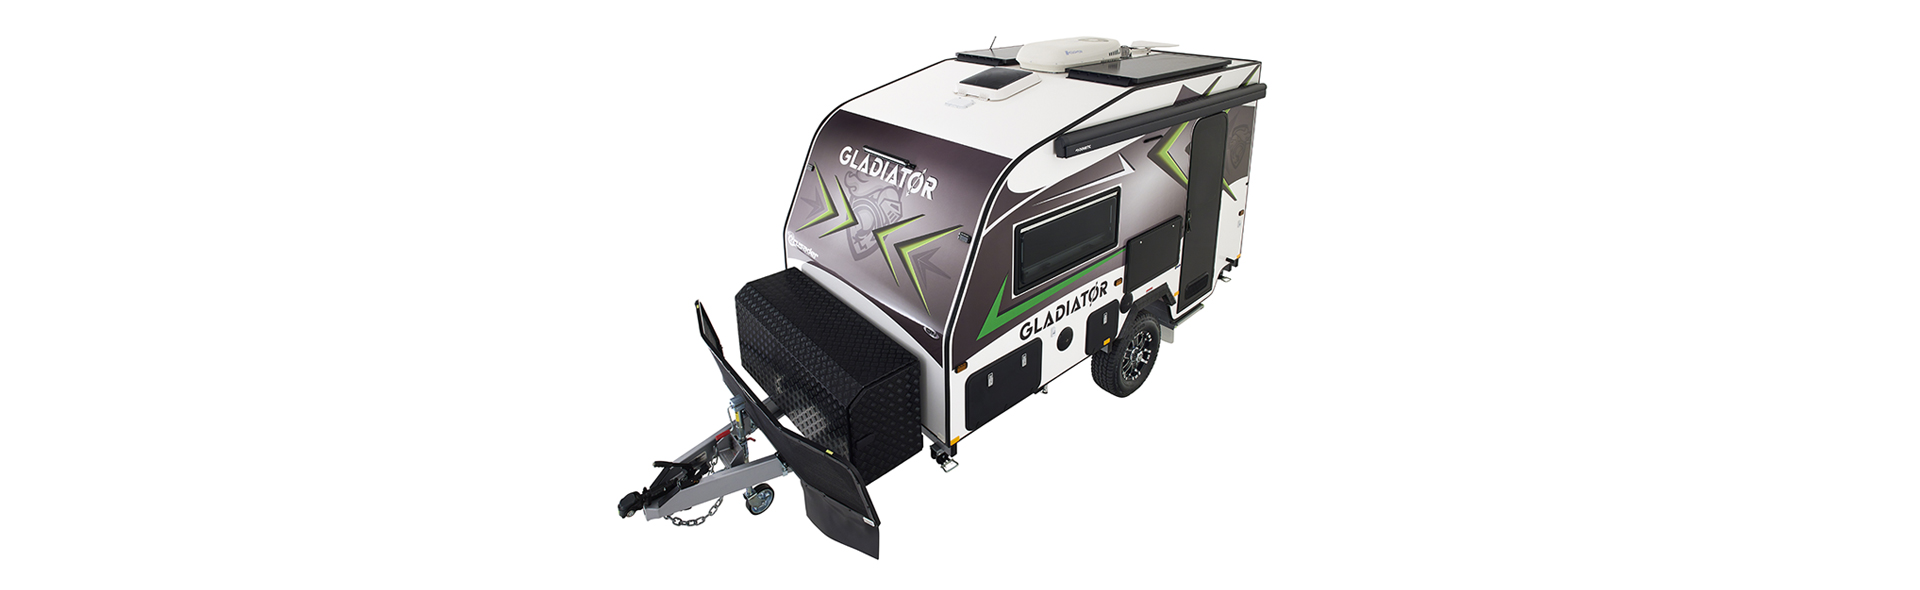 Tuffride 2.7 tonne independent suspension protects the caravan on those rough corrugated roads.